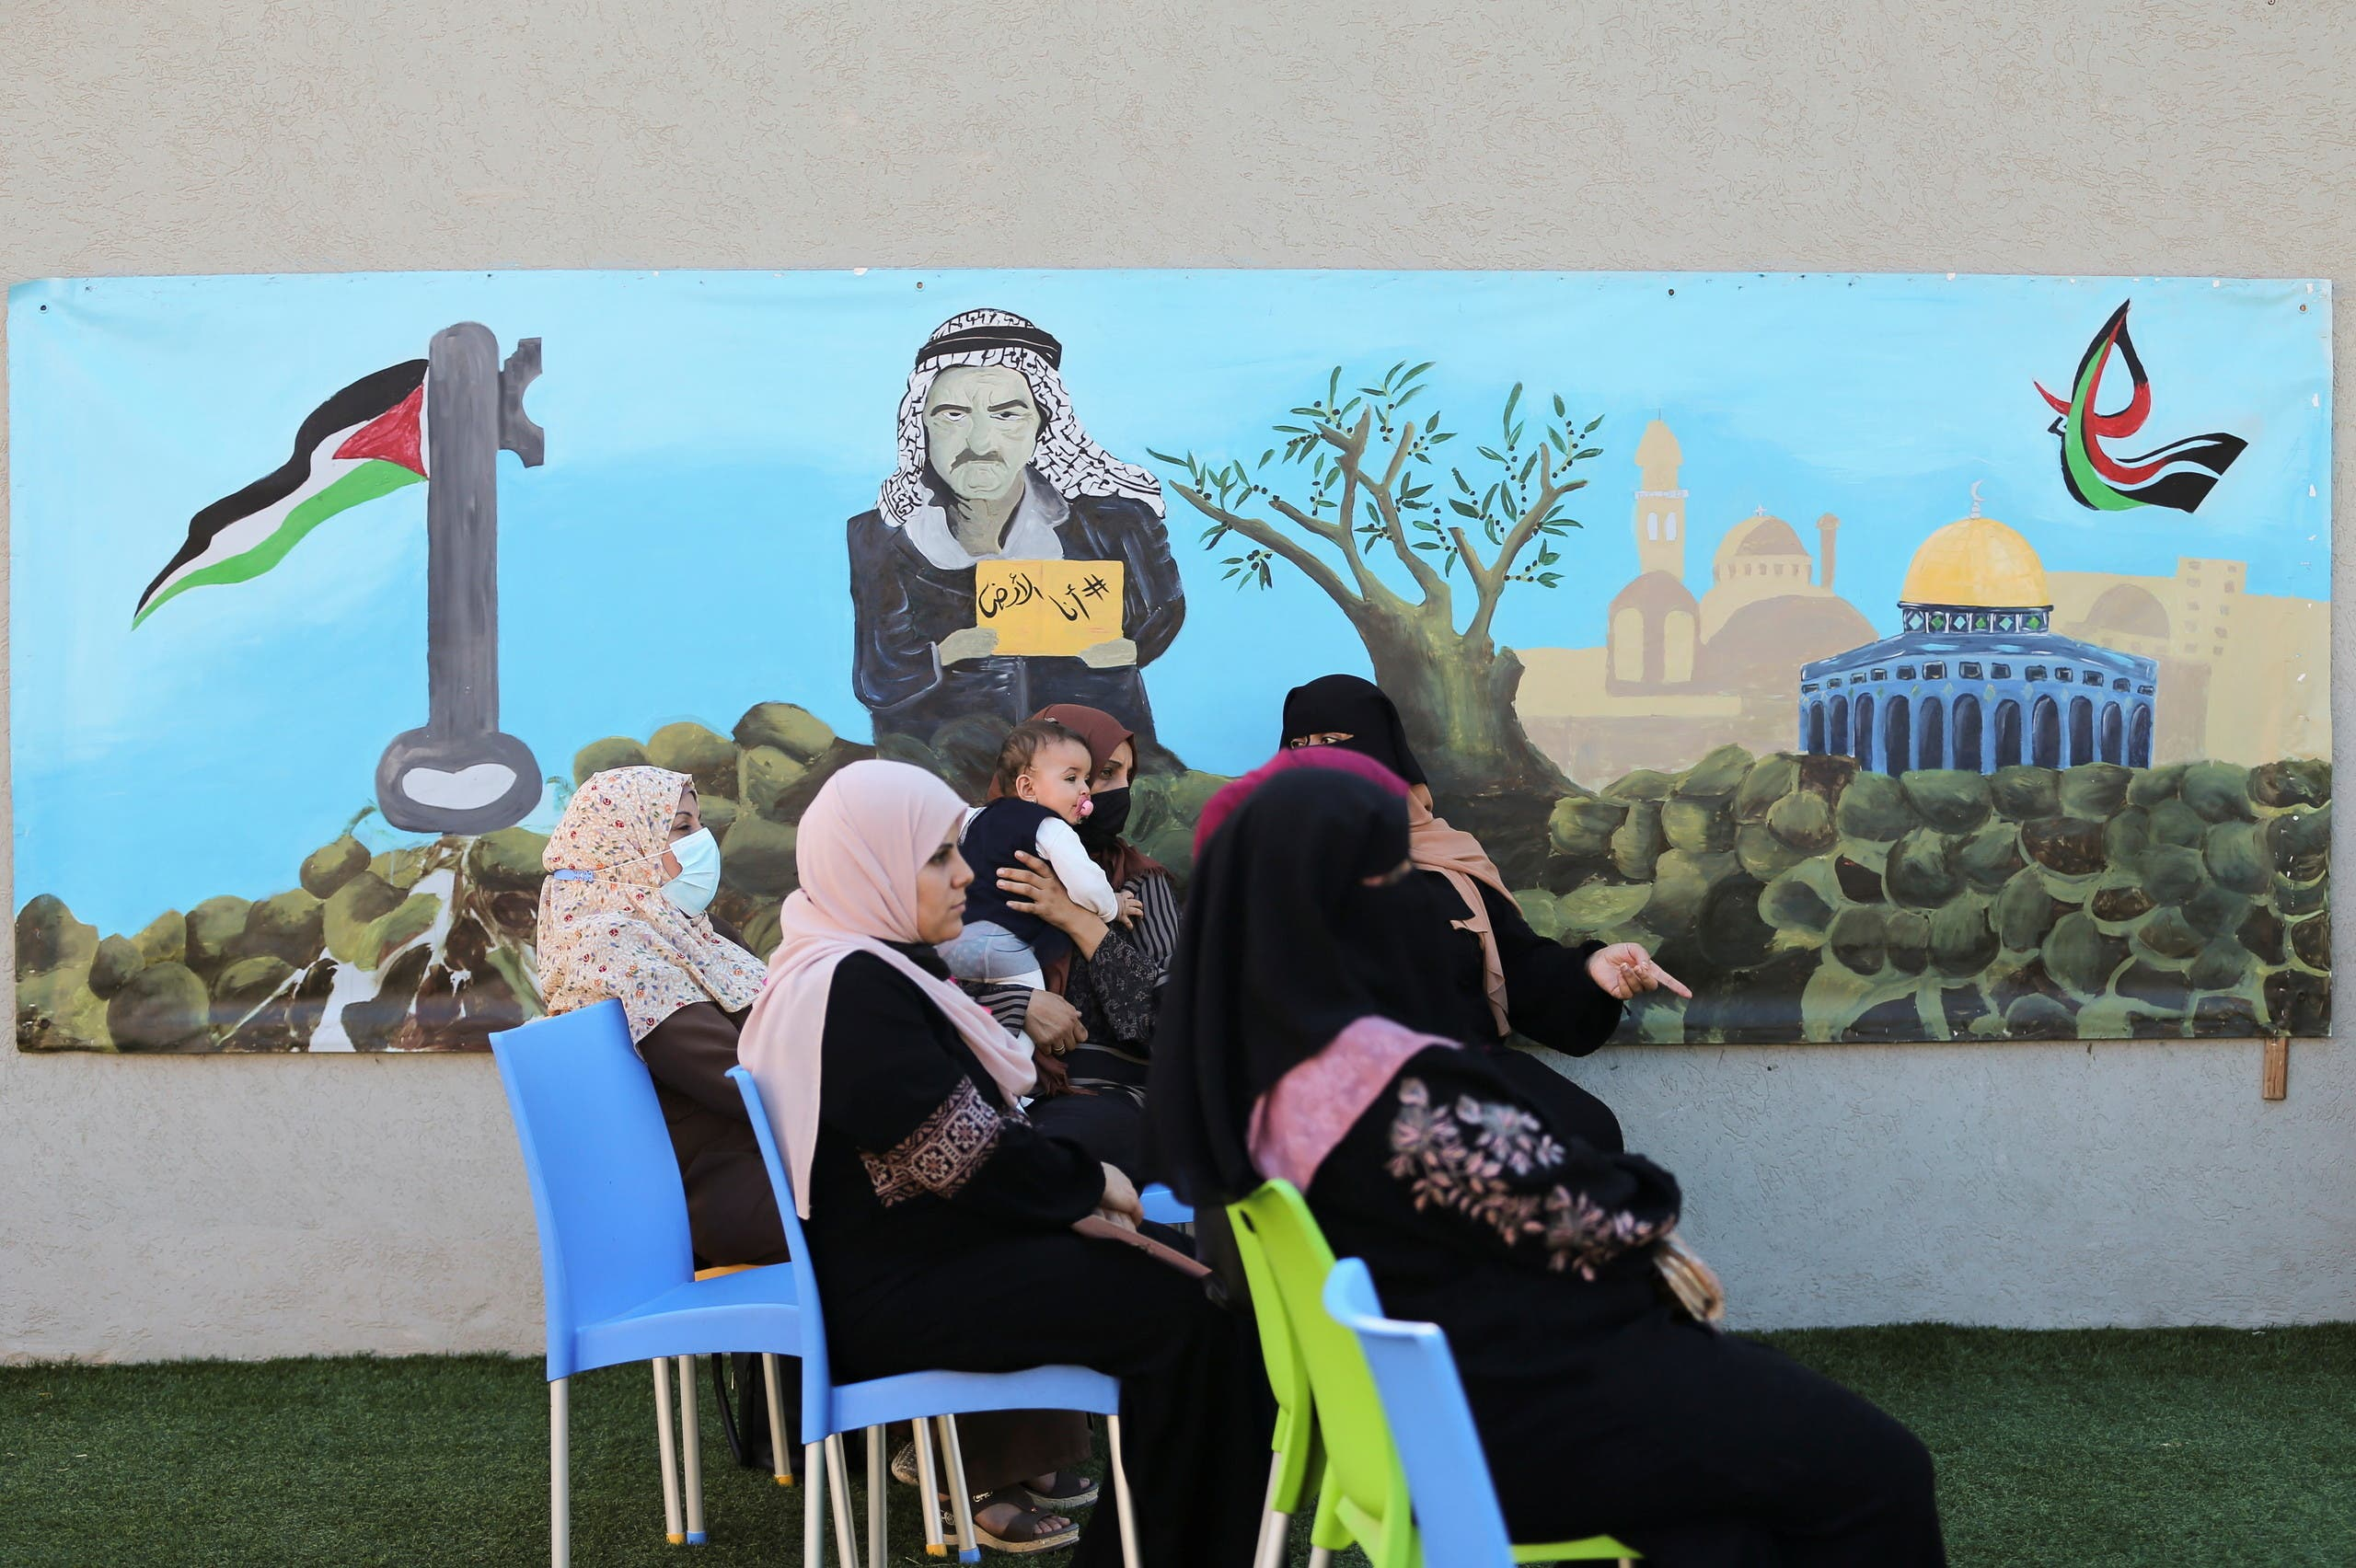 Palestinian women participate in a breast cancer awareness campaign aimed to raise public awareness in Gaza over the need for early tests to discover breast cancer, in Khan Yunis, in the southern Gaza Strip, October 7, 2021. Picture taken October 7, 2021. REUTERS/Ibraheem Abu Mustafa